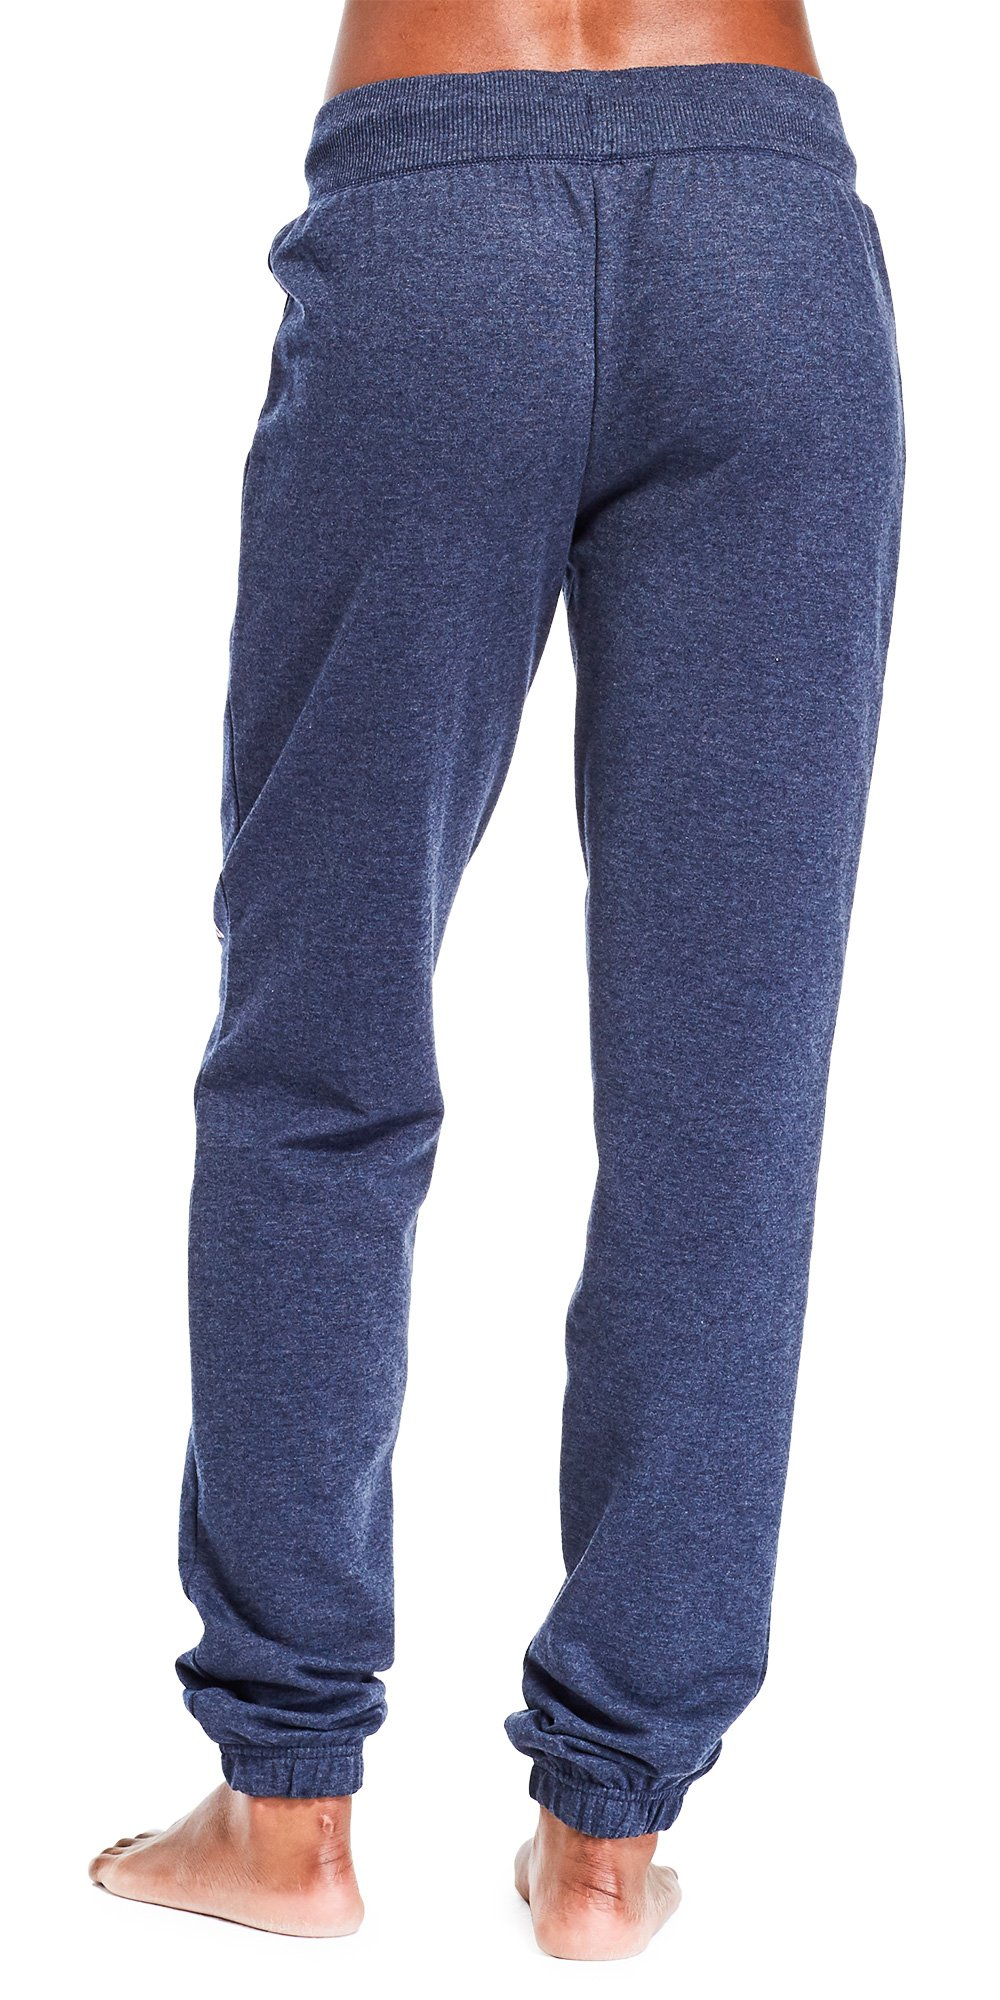 U.S. Polo Assn. Womens Printed French Terry Boyfriend Jogger Sweatpants Navy Heather 3X by U.S. Polo Assn. (Image #2)